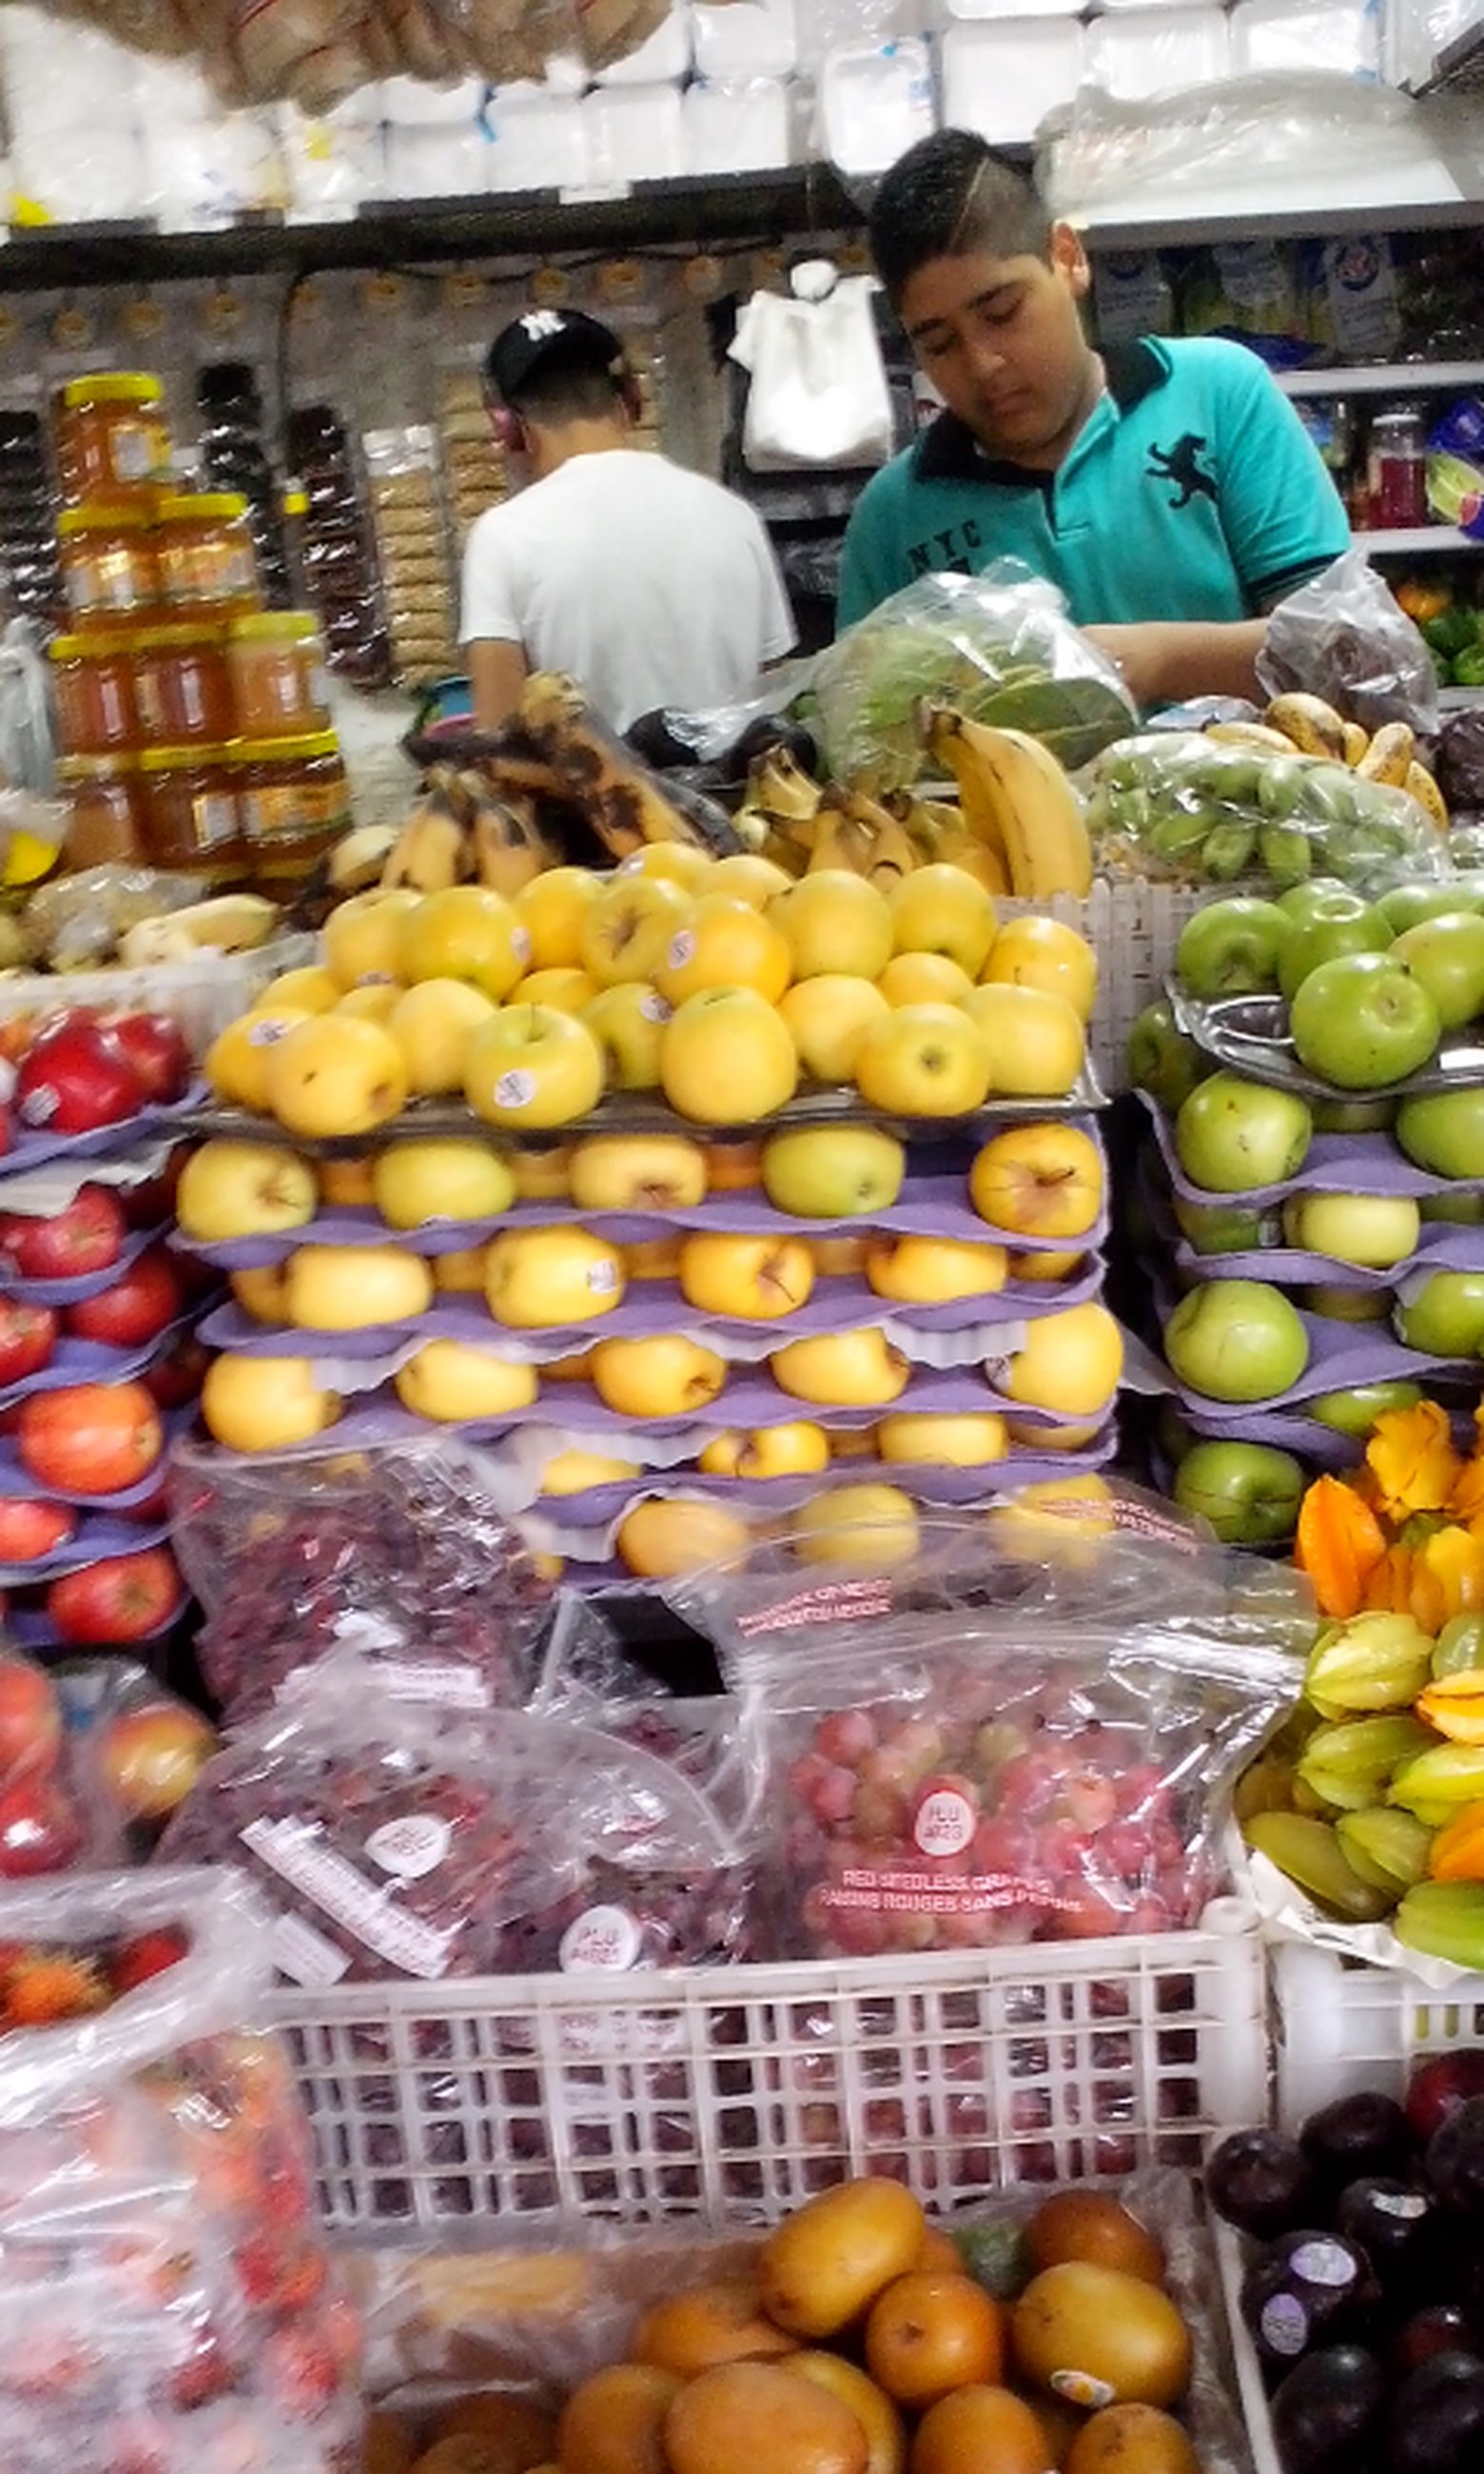 for sale, retail, market stall, market, choice, food, variation, large group of objects, abundance, freshness, store, display, sale, collection, arrangement, small business, shop, multi colored, in a row, still life, repetition